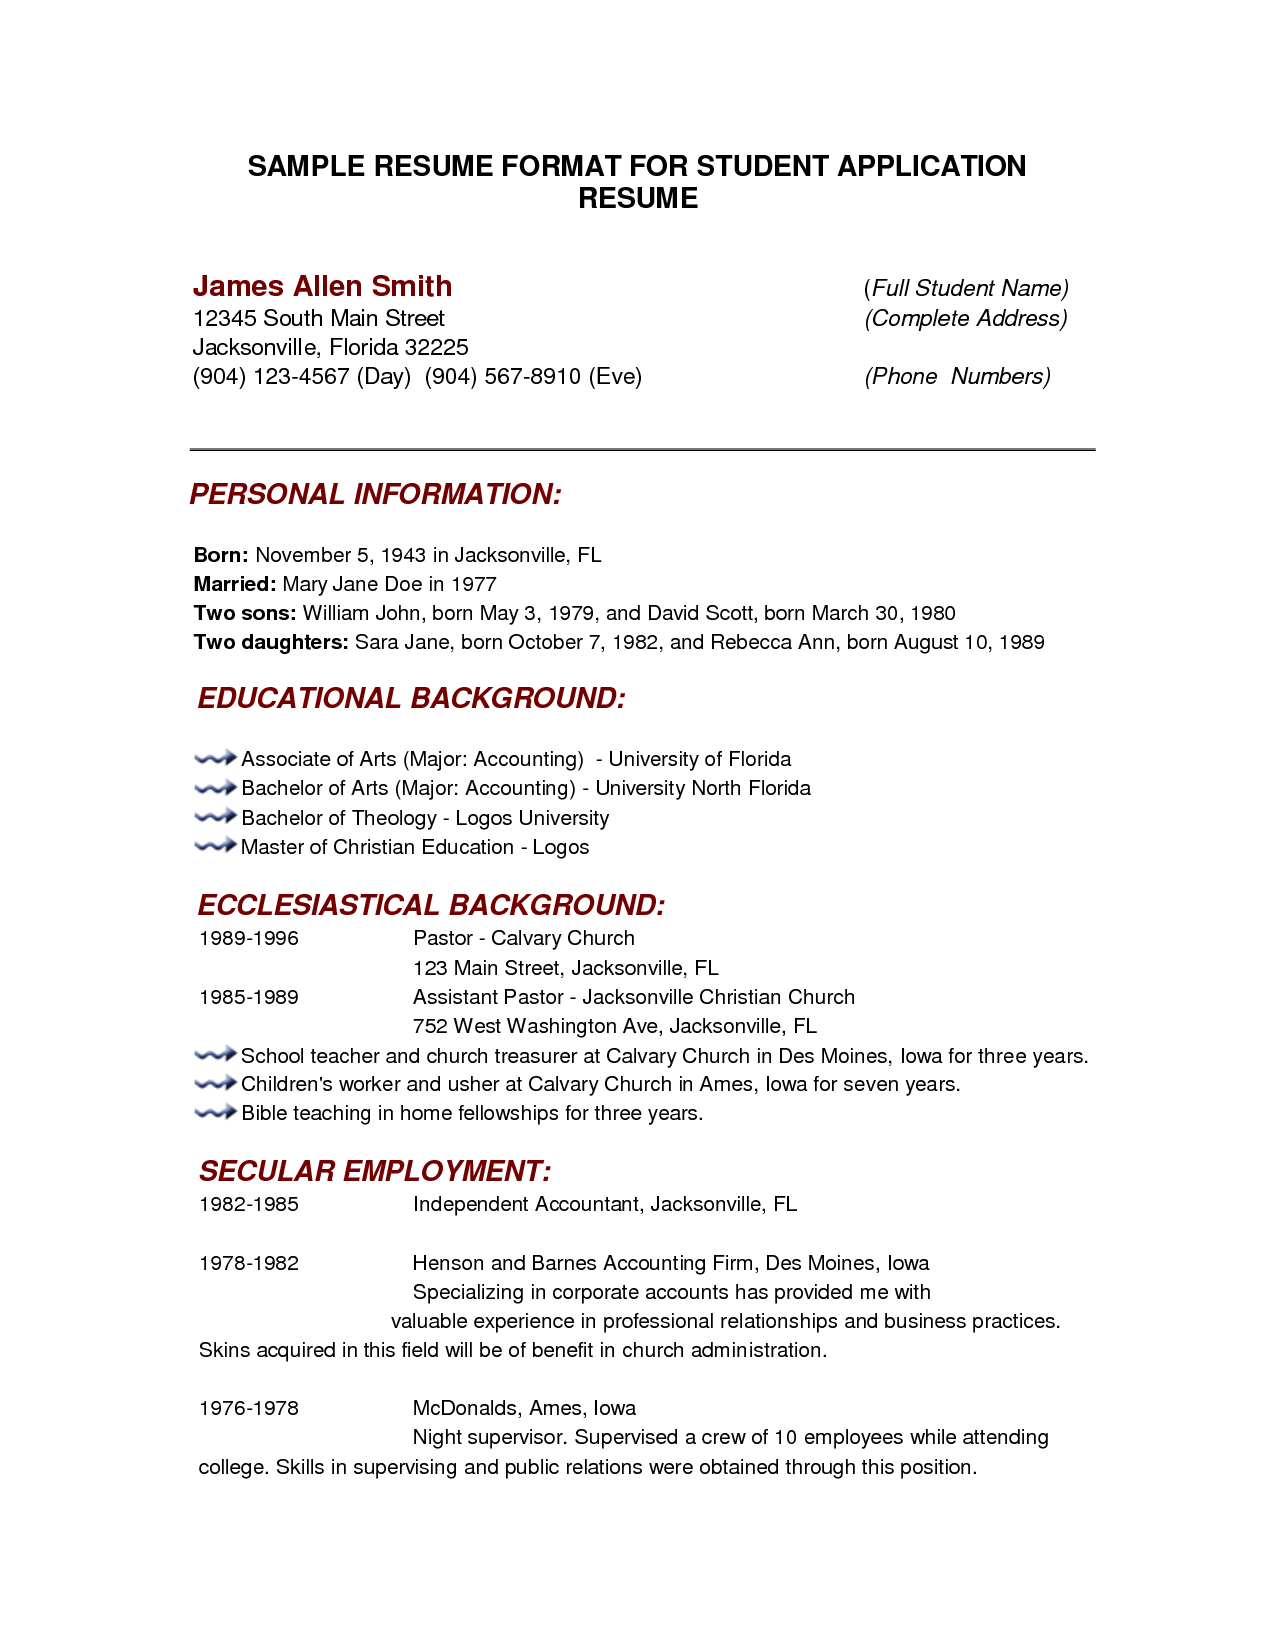 Sample Resume Template Resume Template For College Students  Httpwwwresumecareer